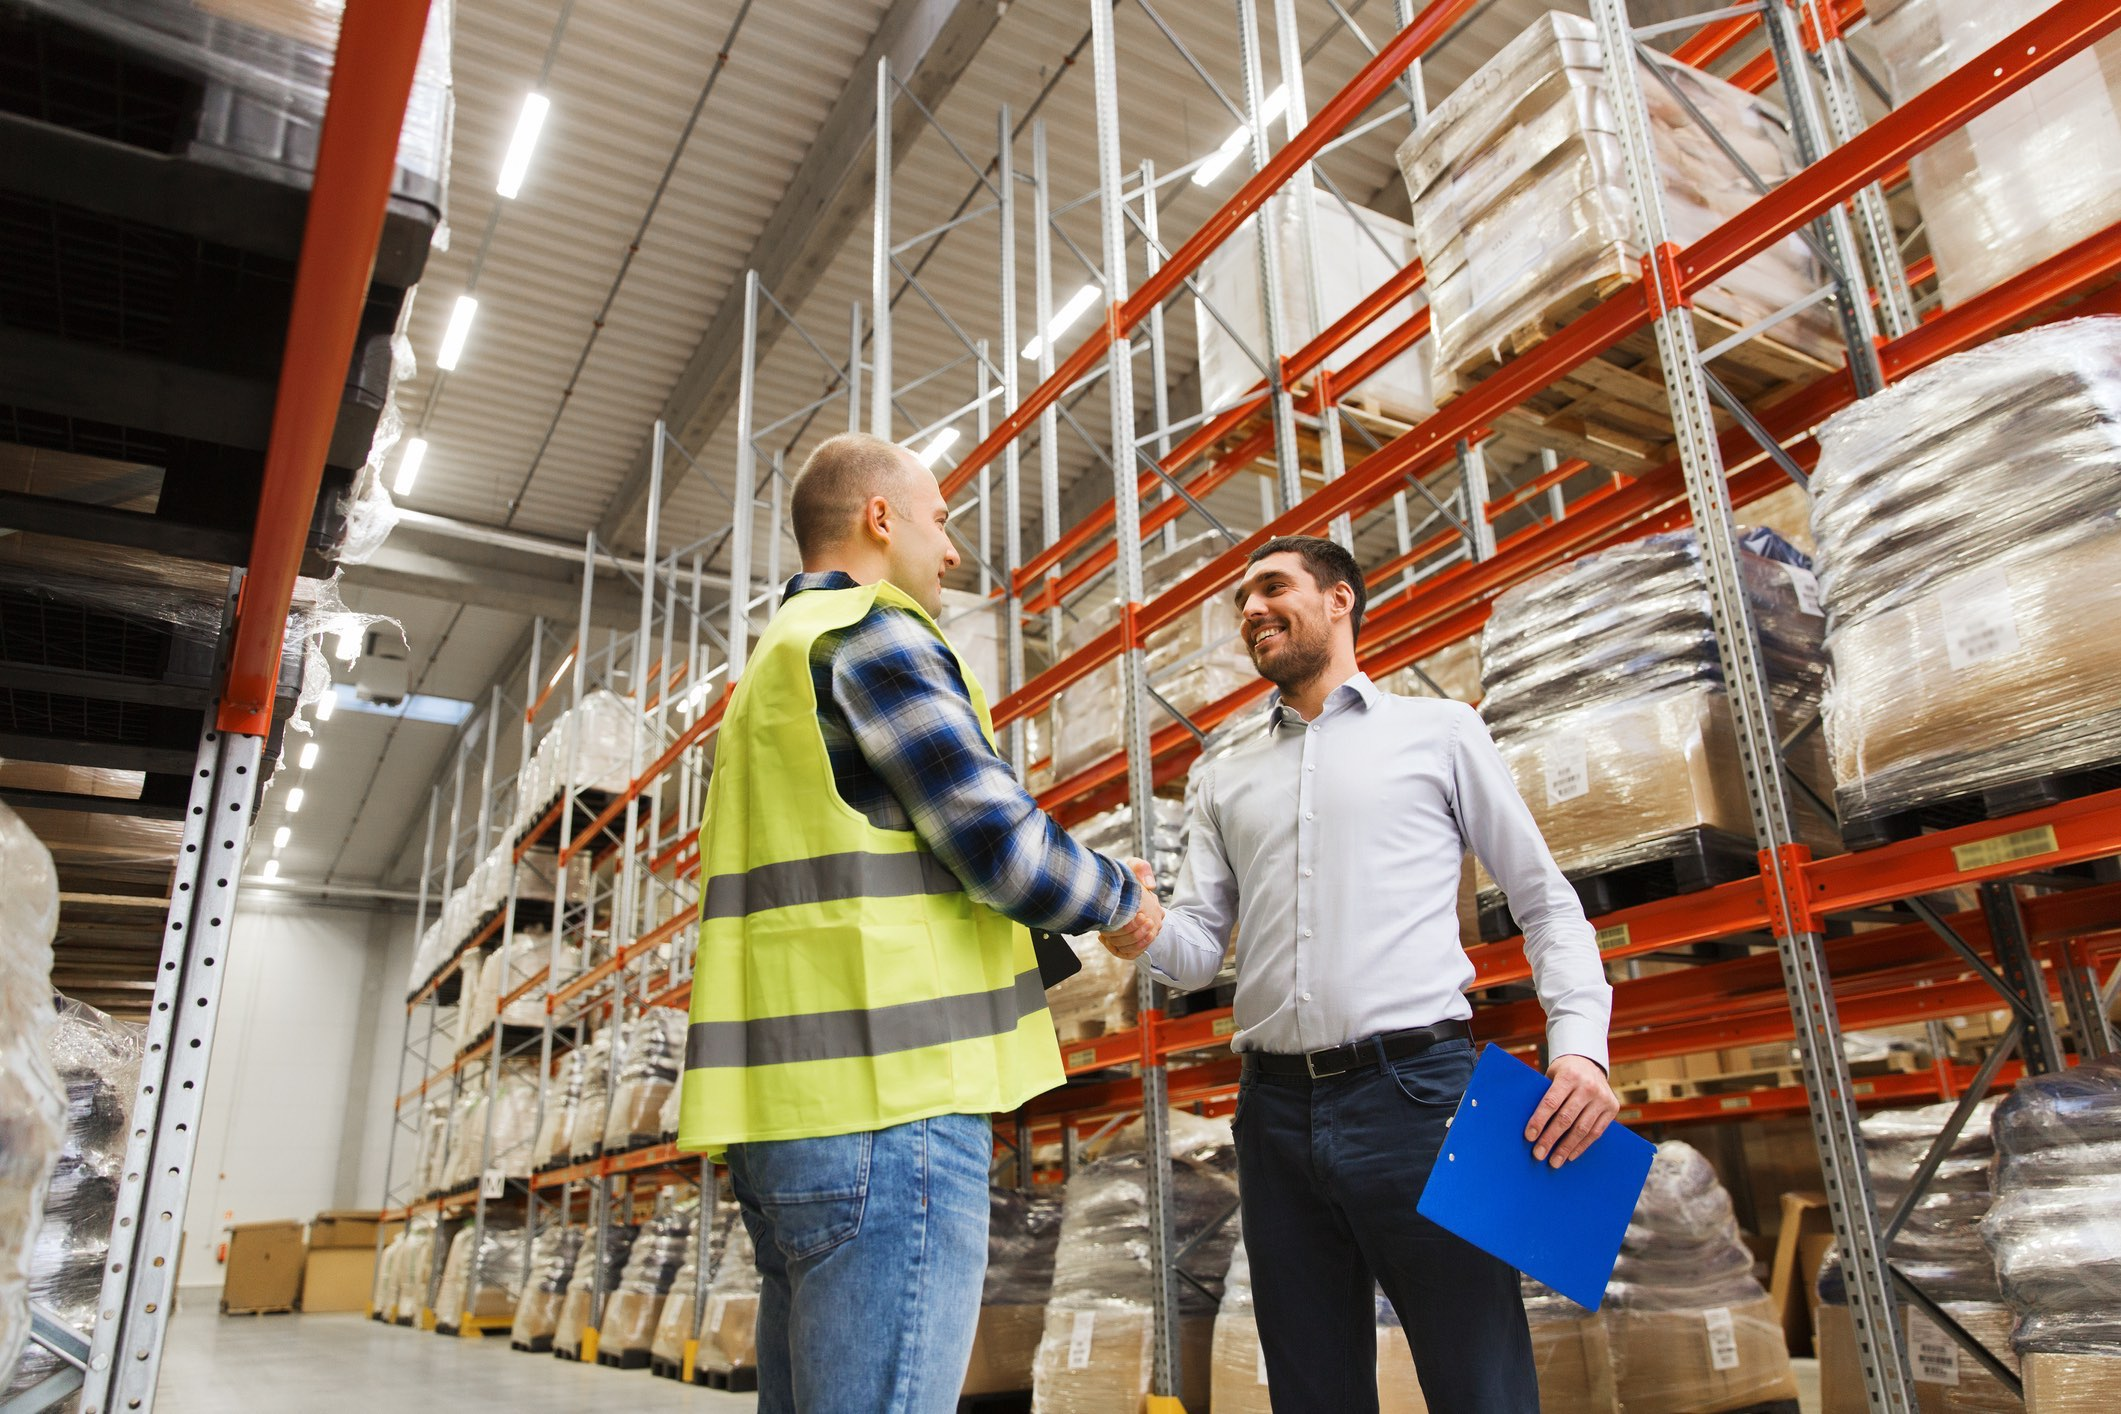 Warehouse Safety Tips By The Experts